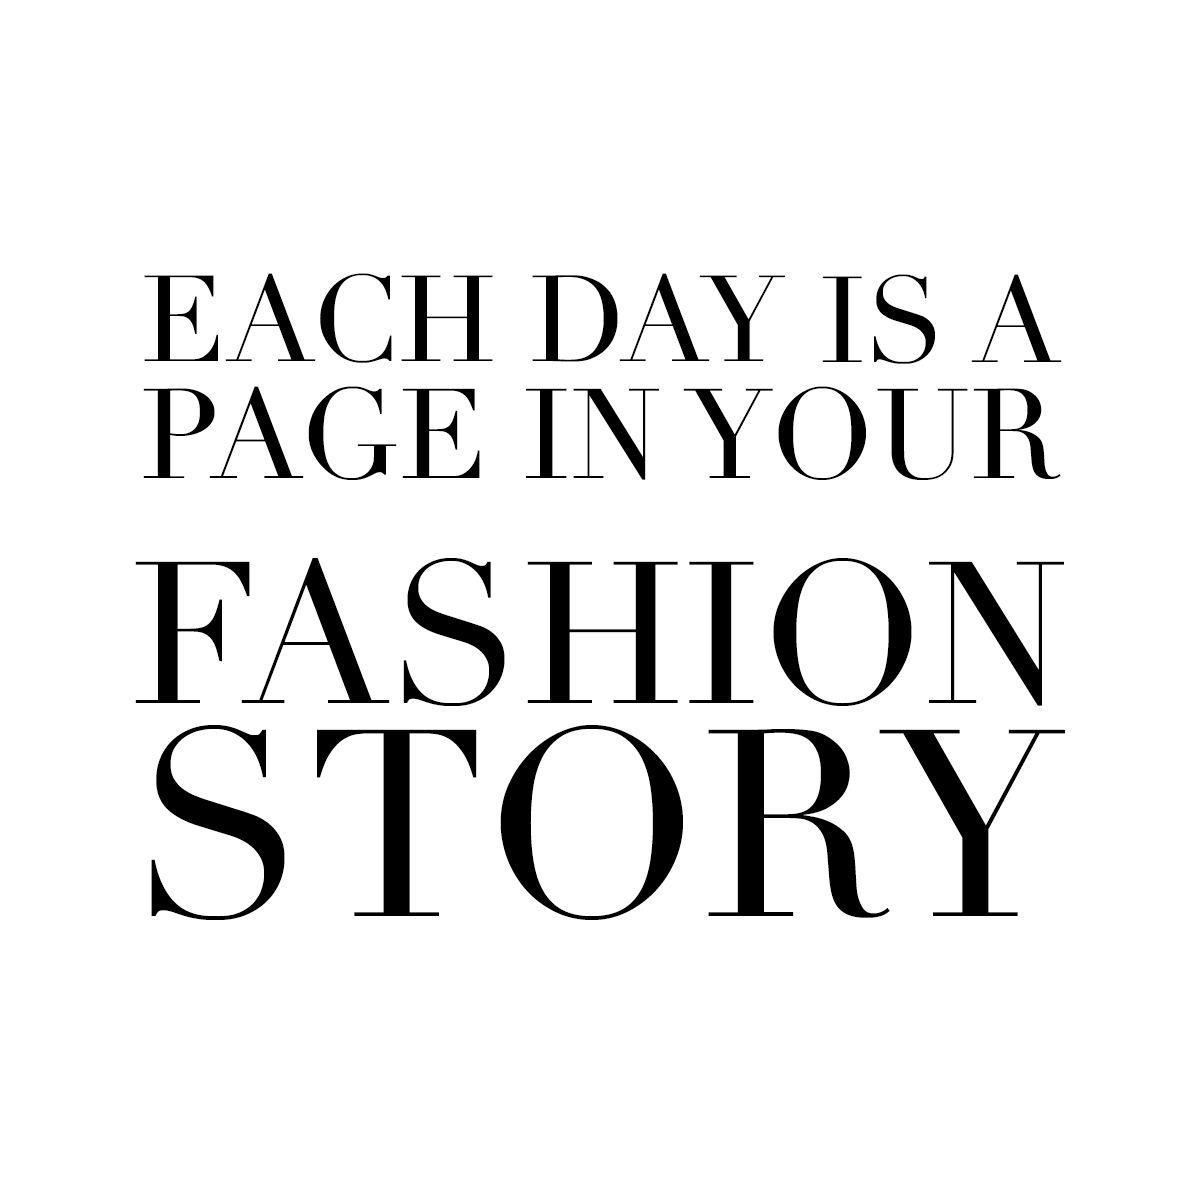 Each Day Is A Page In Your Fashion Story Www Ginatricot Com Ginatricot Quote Fashion Quotes Inspirational Fashion Quotes Fashion Designer Quotes